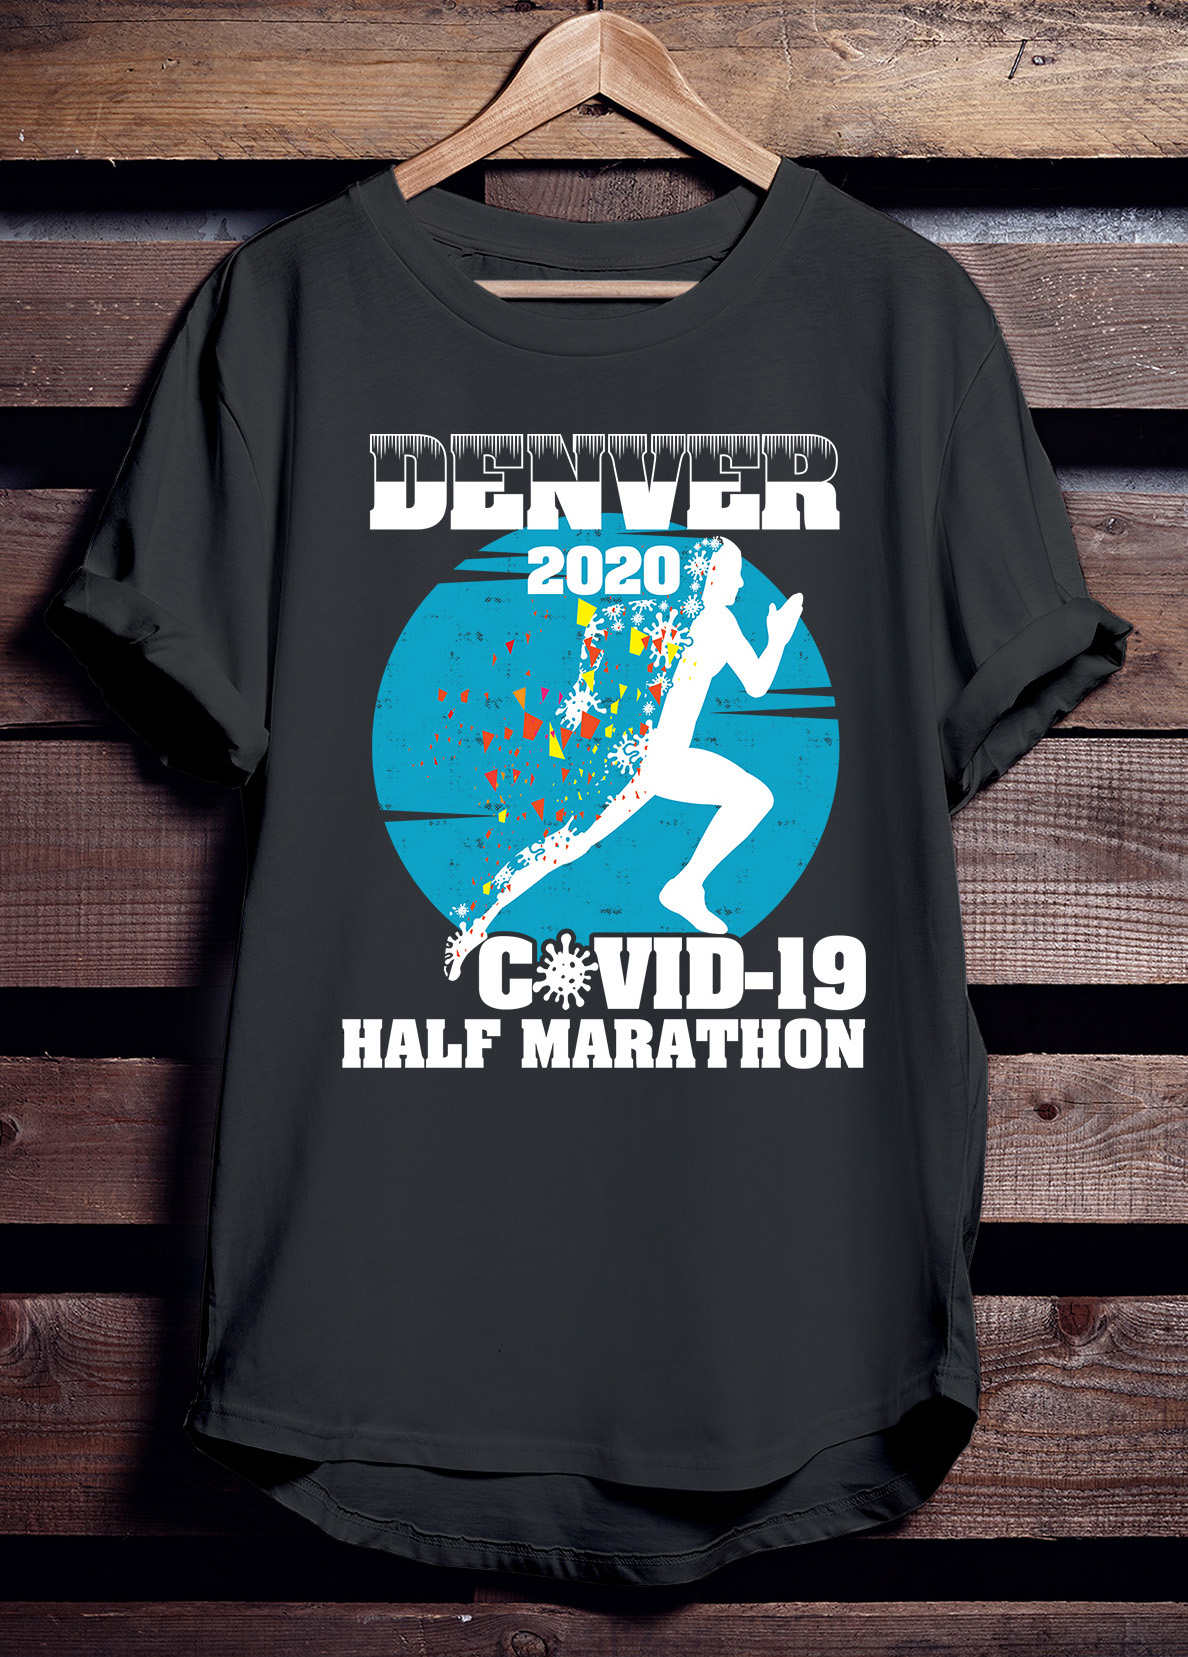 Buy 1 get 1 free Unique Amazing T-shirt Design with in 24hrs with Unlimited Revision